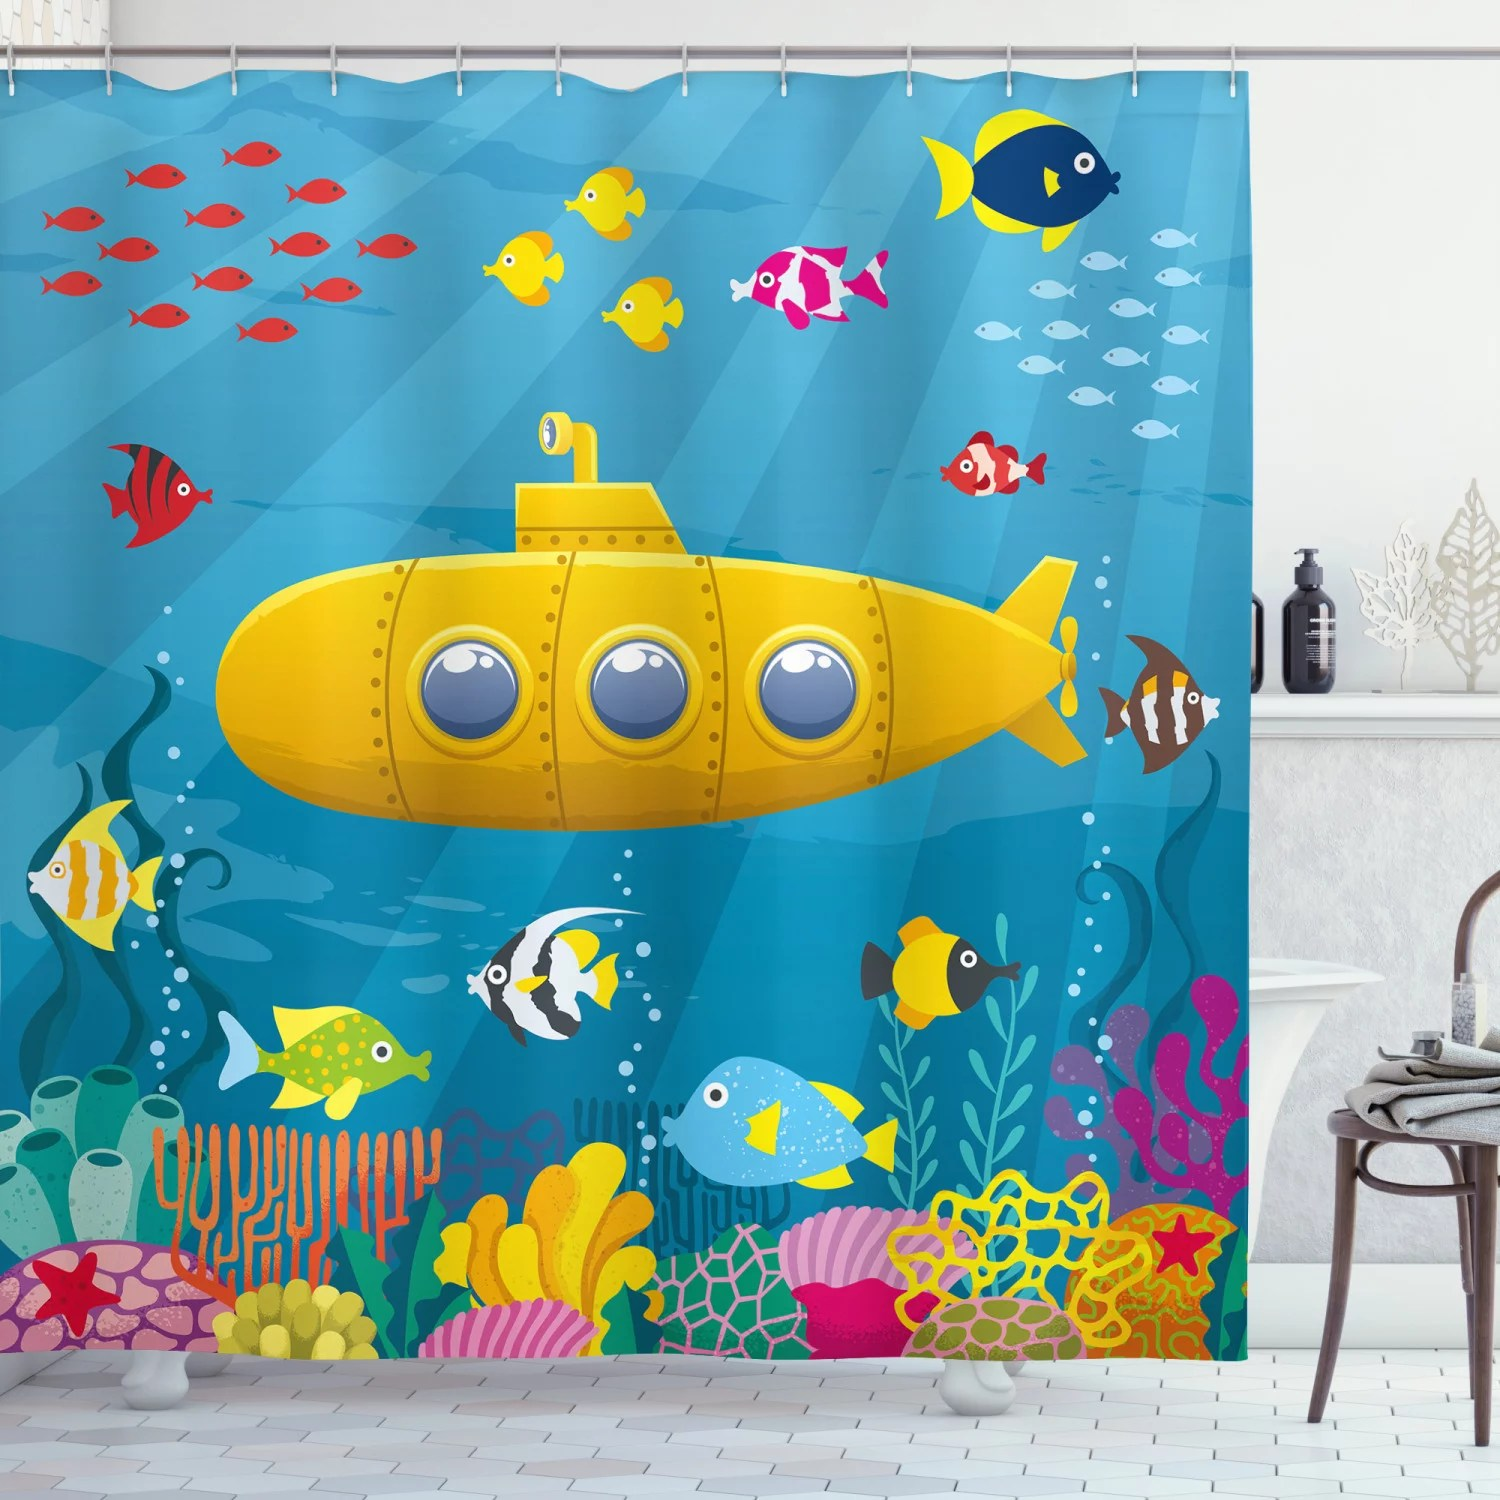 yellow submarine shower curtain coral reef with colorful fish ocean life marine creatures tropic kid fabric bathroom set with hooks blue yellow